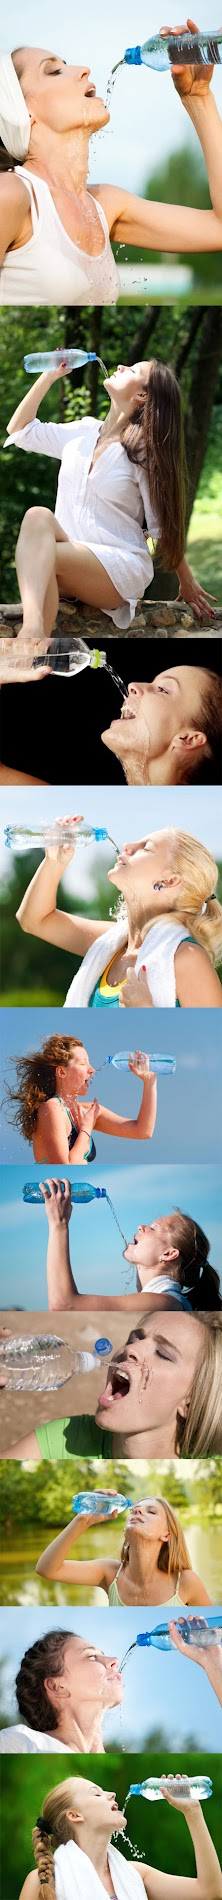 women struggling to drink water